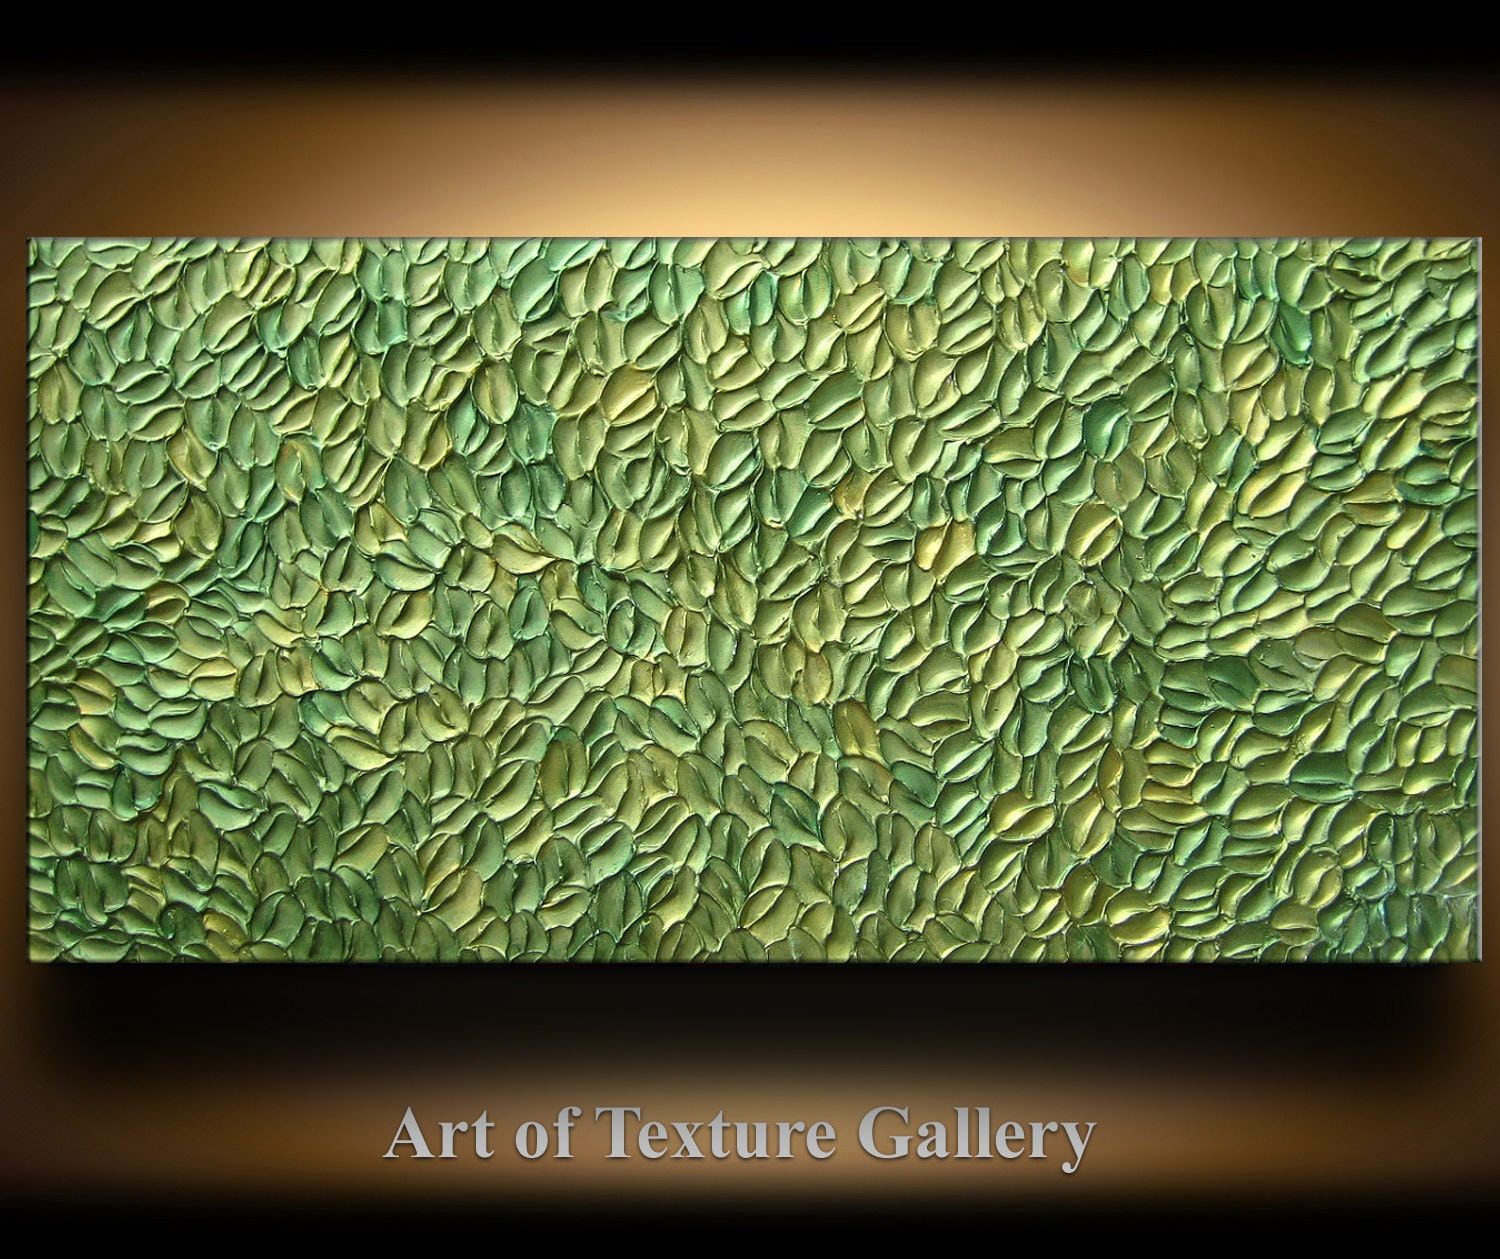 Abstract texture painting 48 x 24 original modern green sage for Texture painting ideas canvas